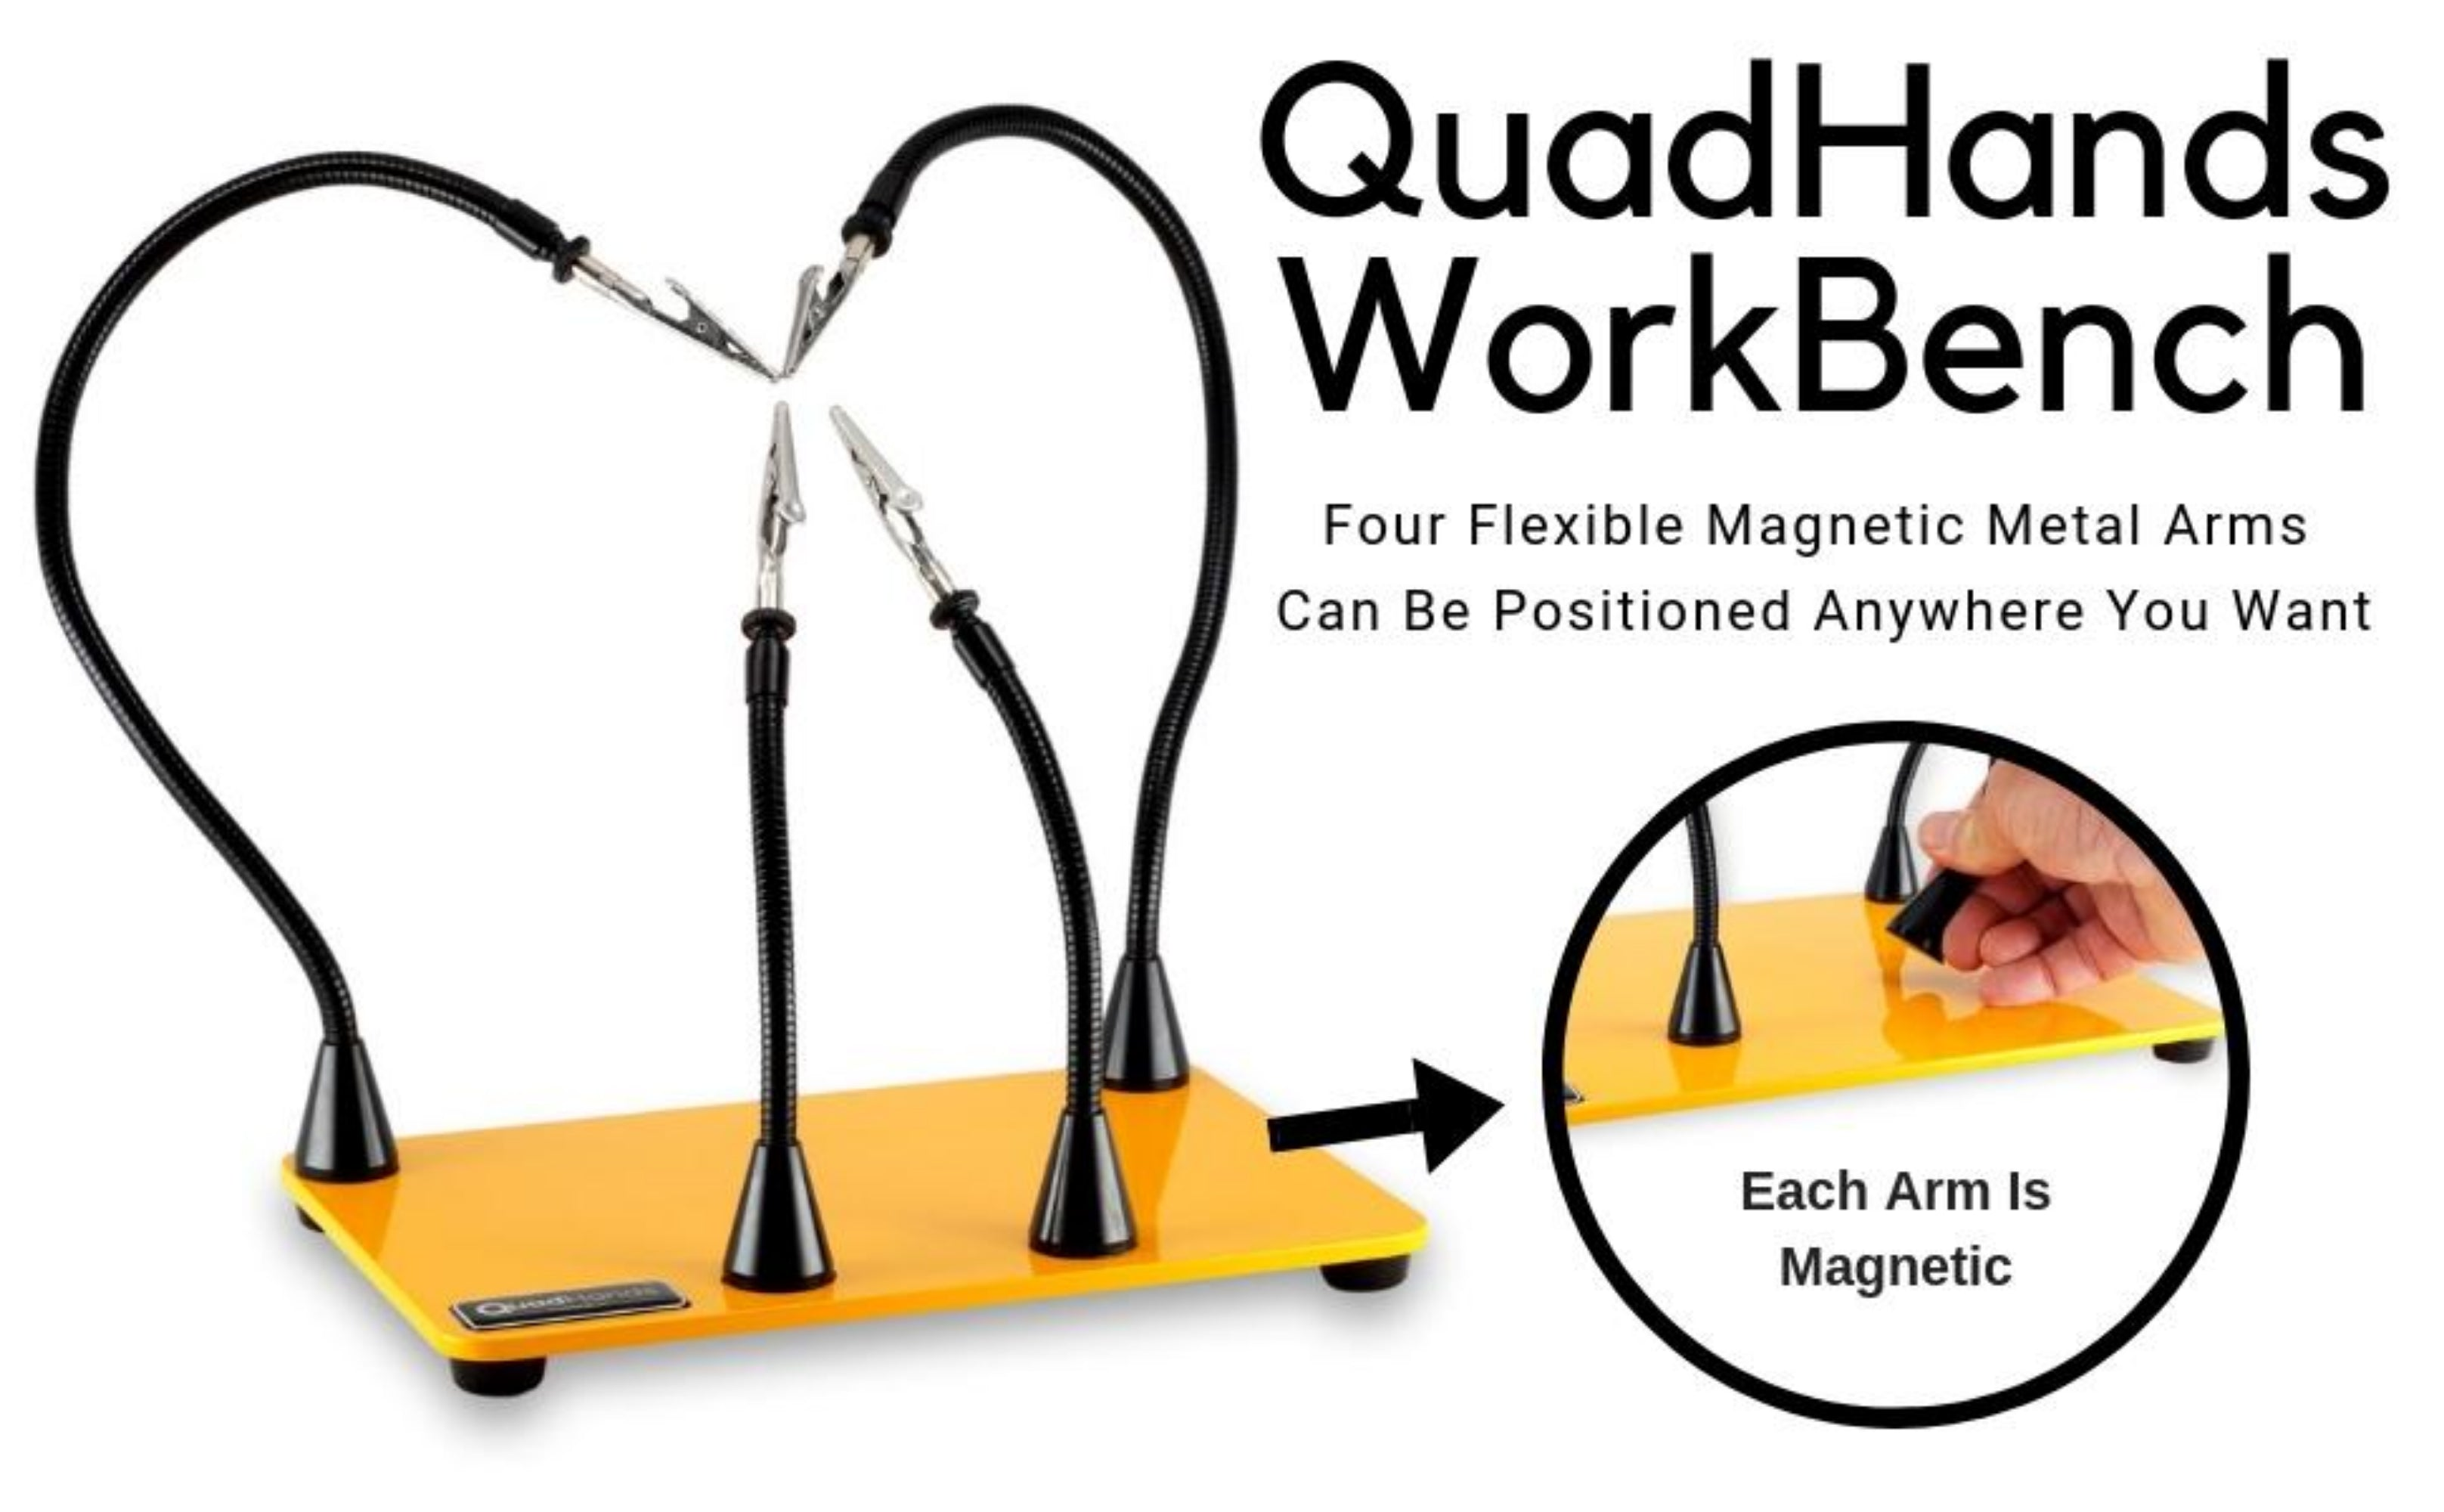 QuadHands Magnetic WorkBench Helping Hands Third Hands Tool - Our Most  Popular Design!